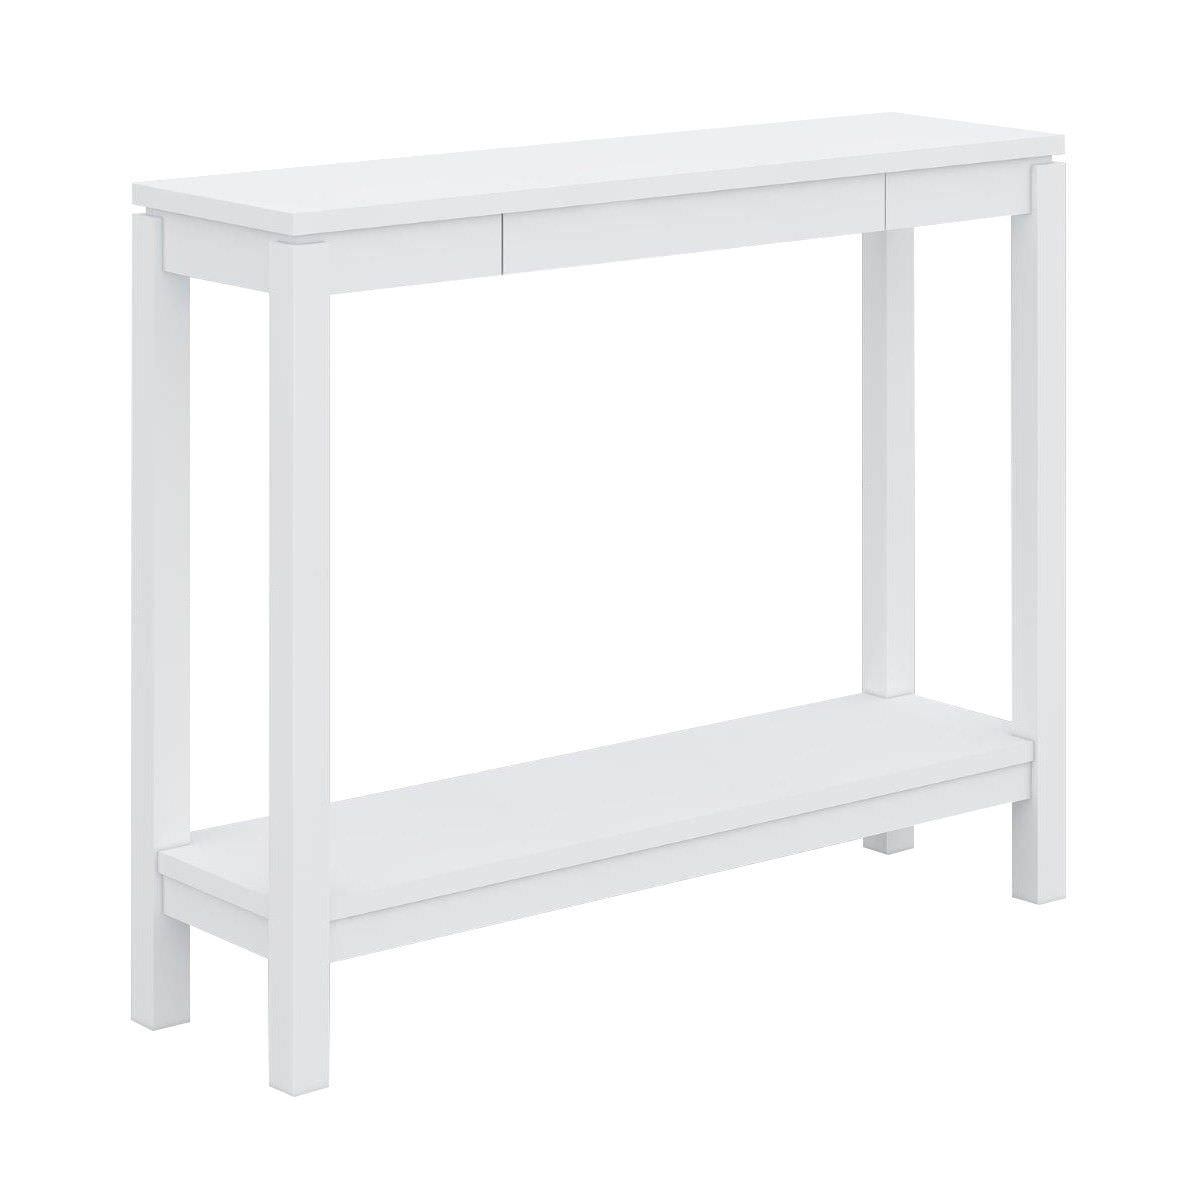 Narrow Console Table Australia Braque Solid Rubberwood Timber Console Table 96cm White